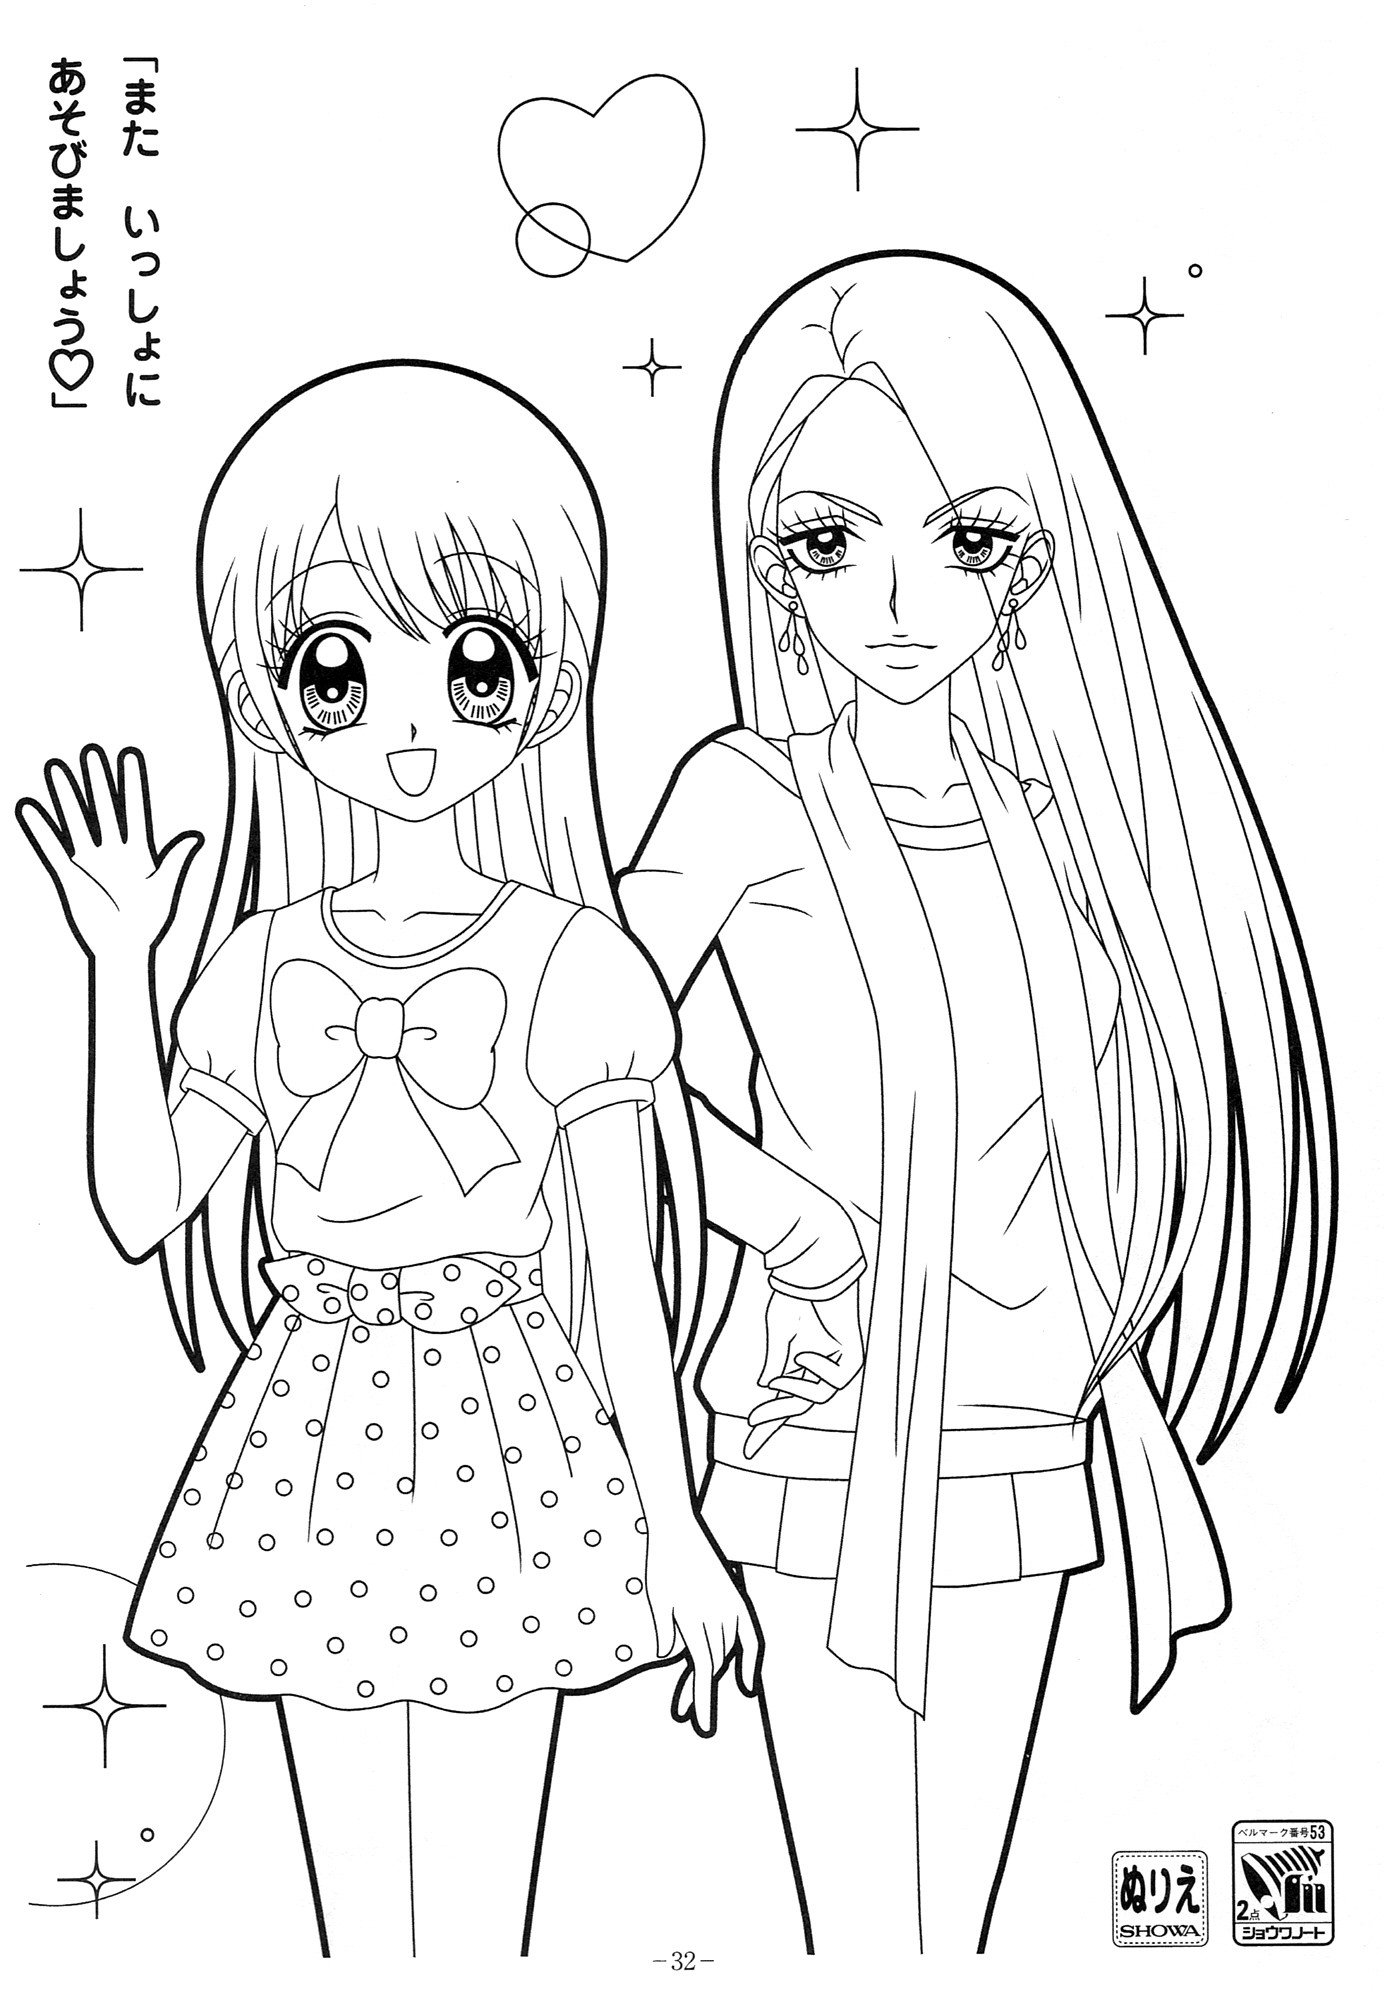 Coloring Pages Com  Anime coloring pages